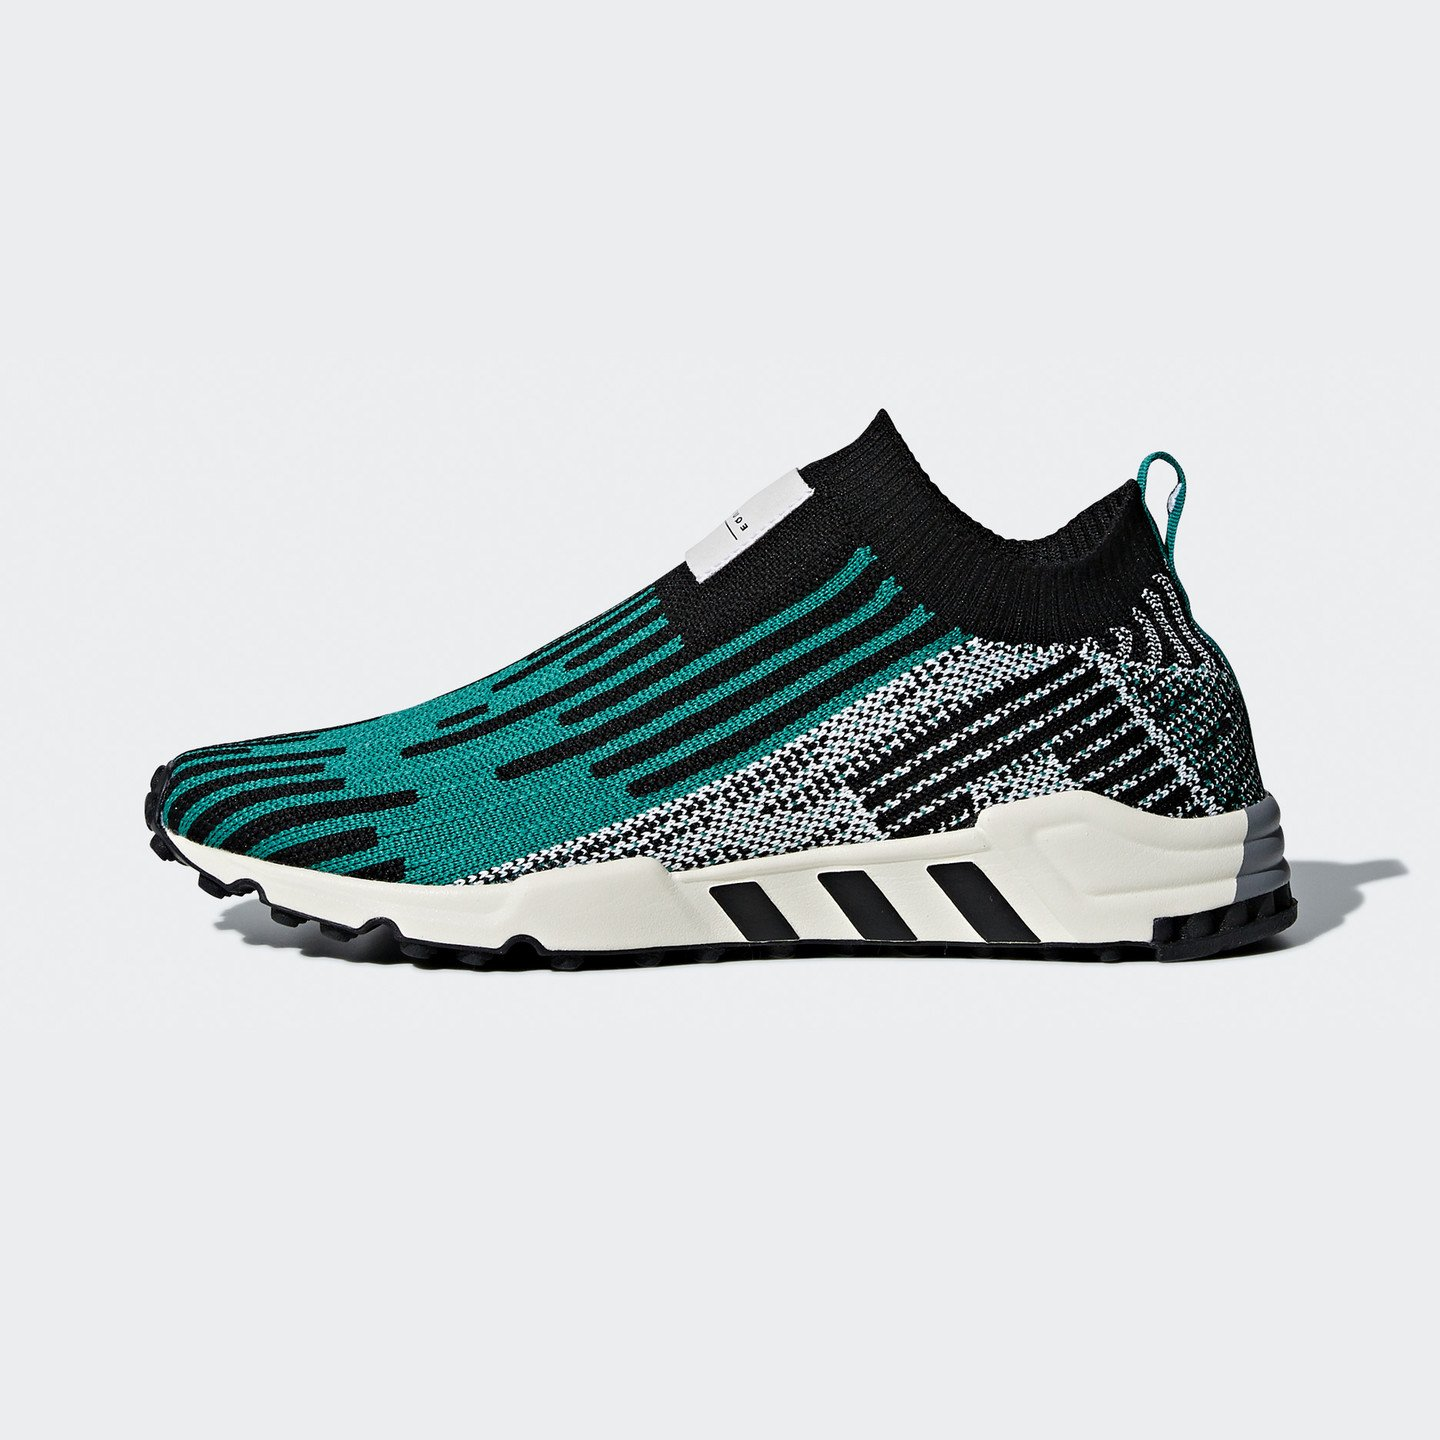 Adidas EQT Support Sk Primeknit Green / Core Black / Ftwr White B37523